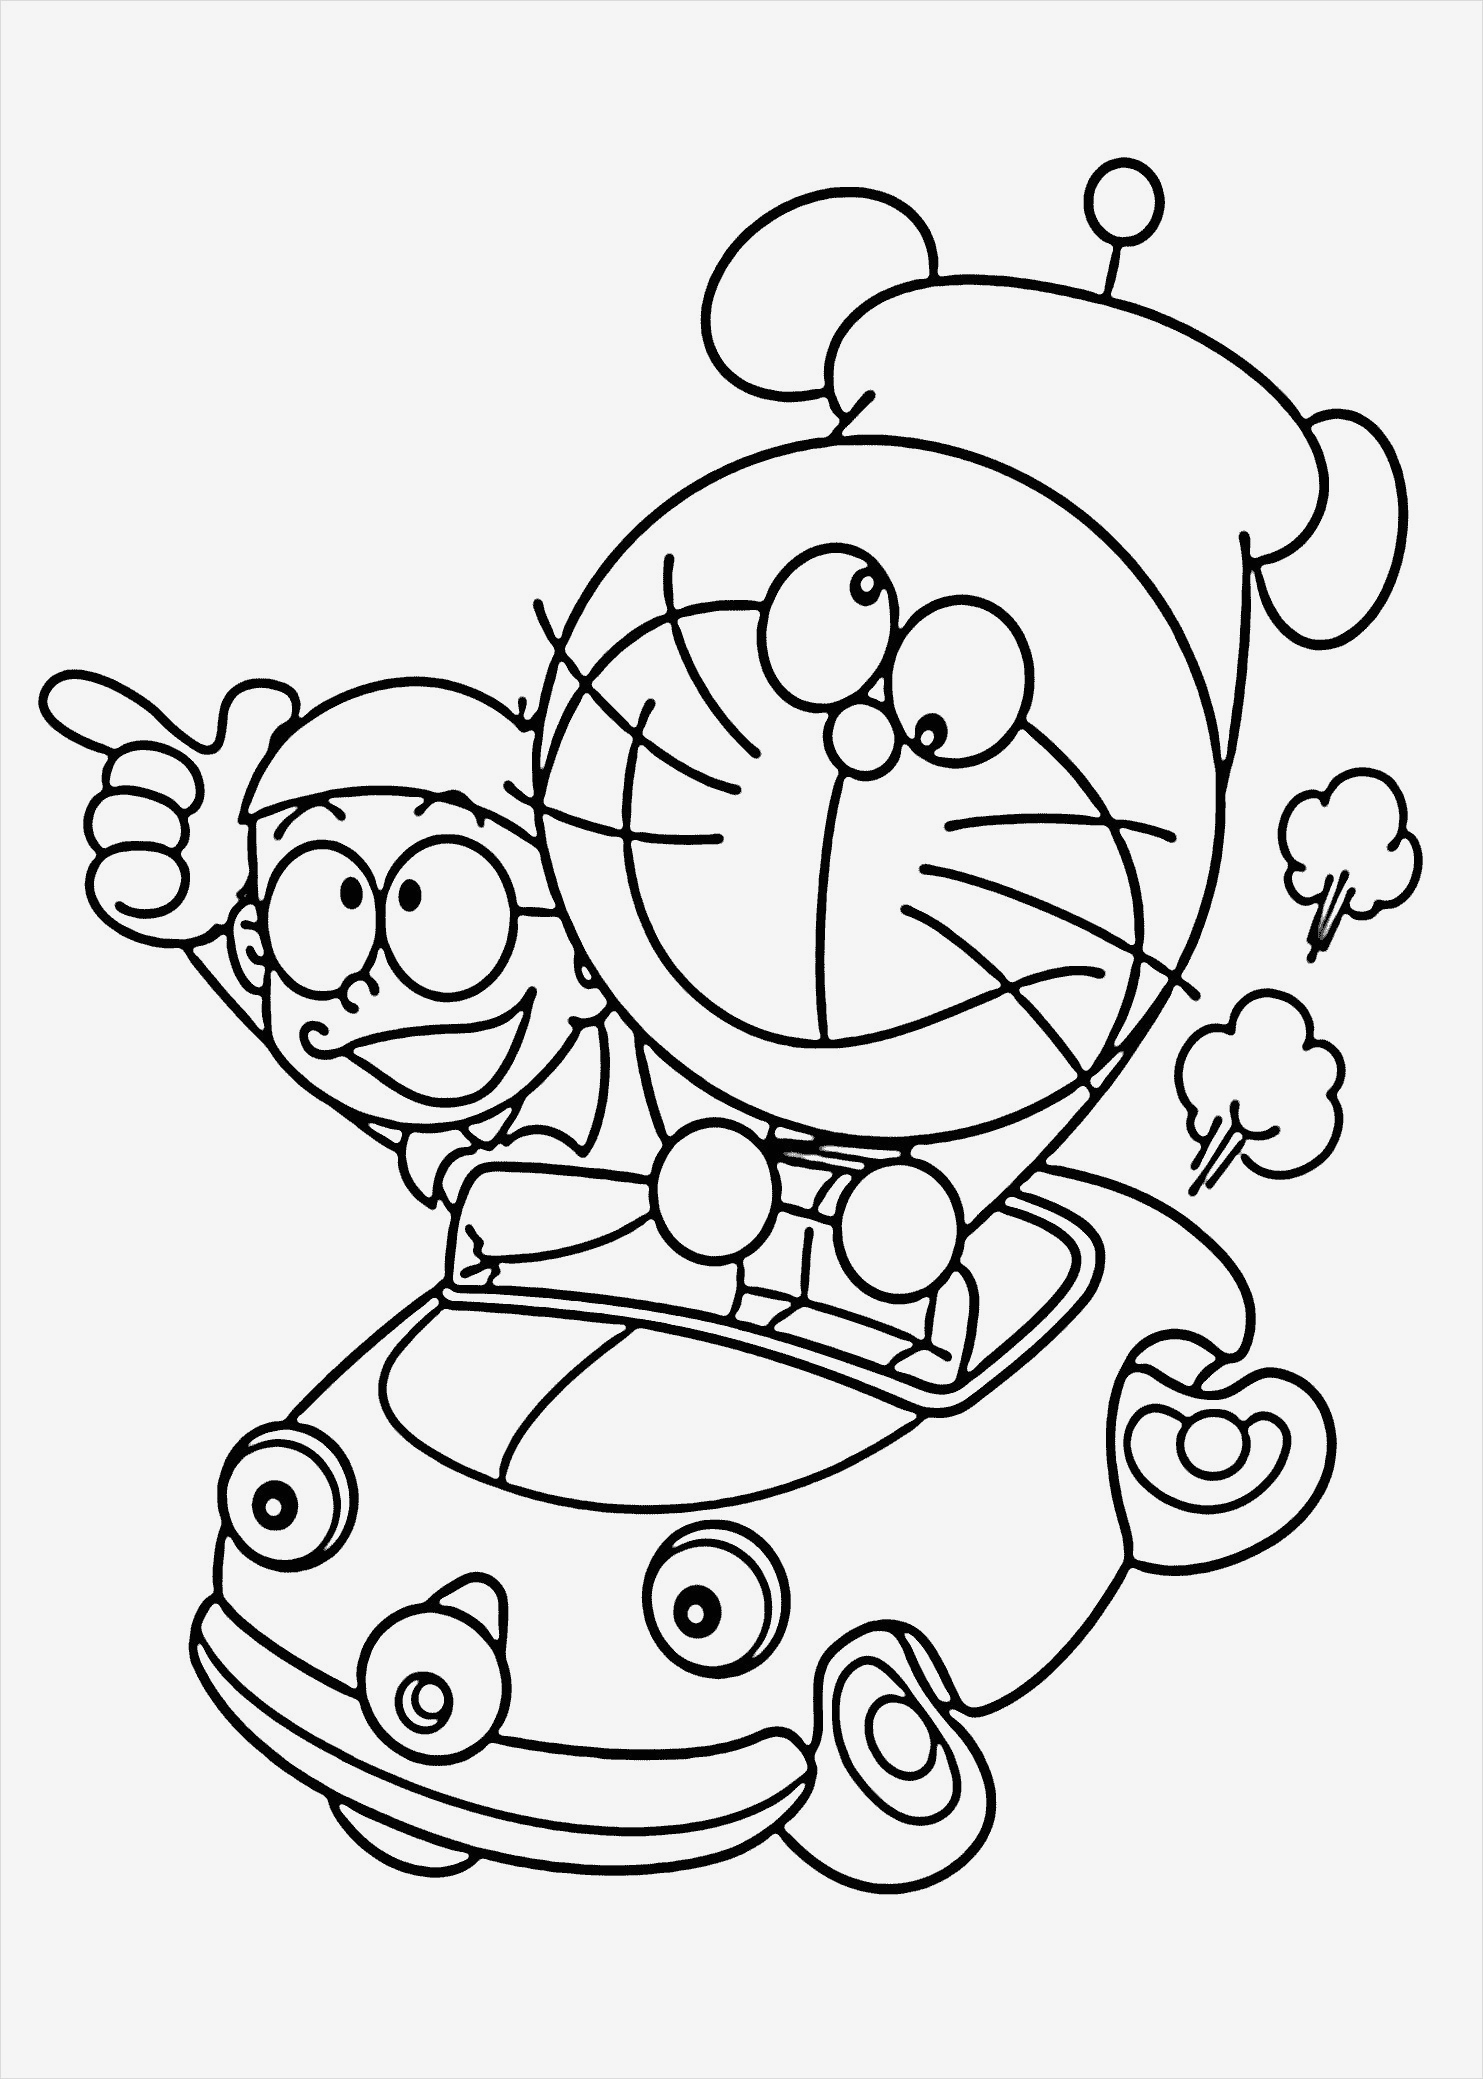 circus coloring pages Download-Blastoise Coloring Page Best Easy Friendship Coloring Pages Luxury Coloring Sheets for Girls Printable 19-f